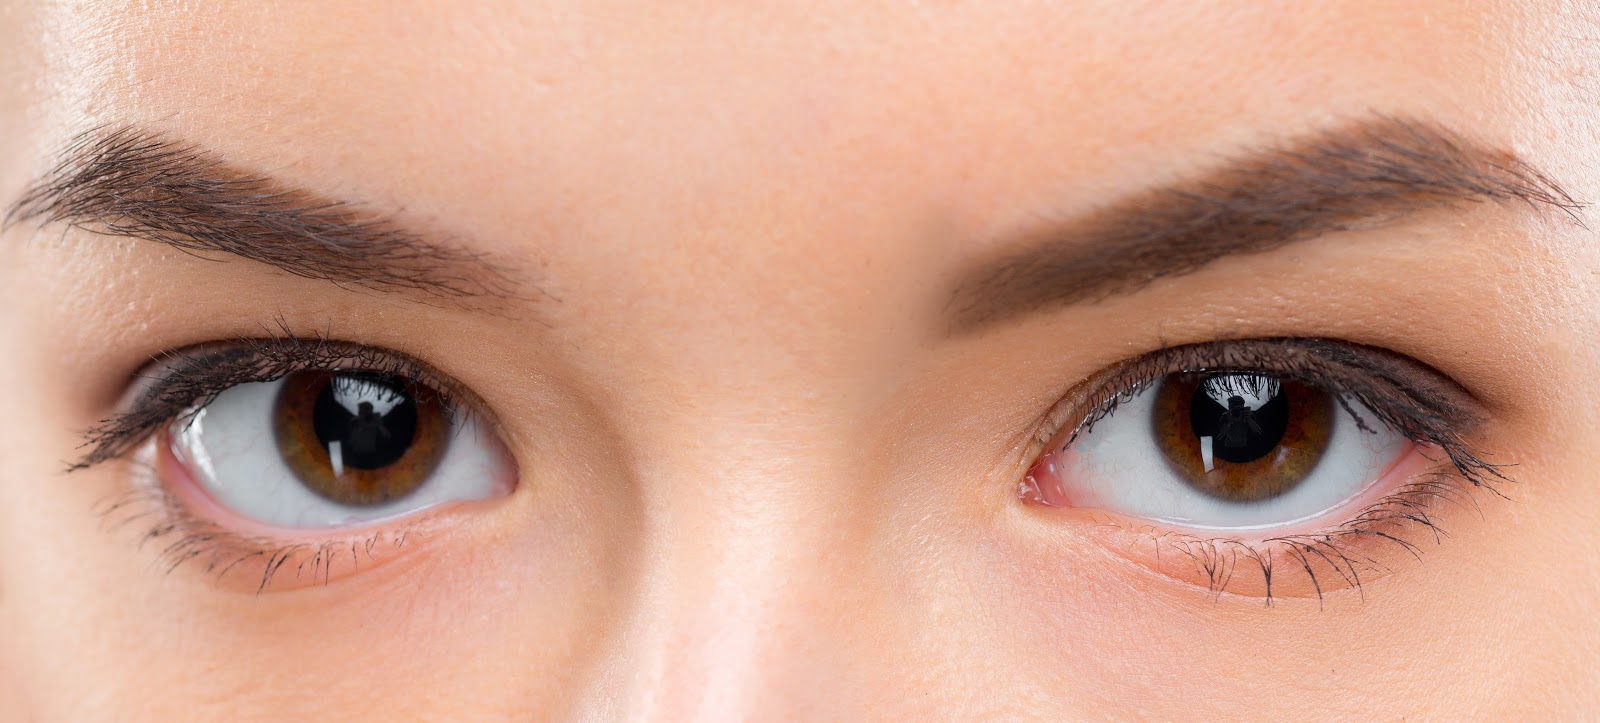 Simple home remedies for dry Eyes